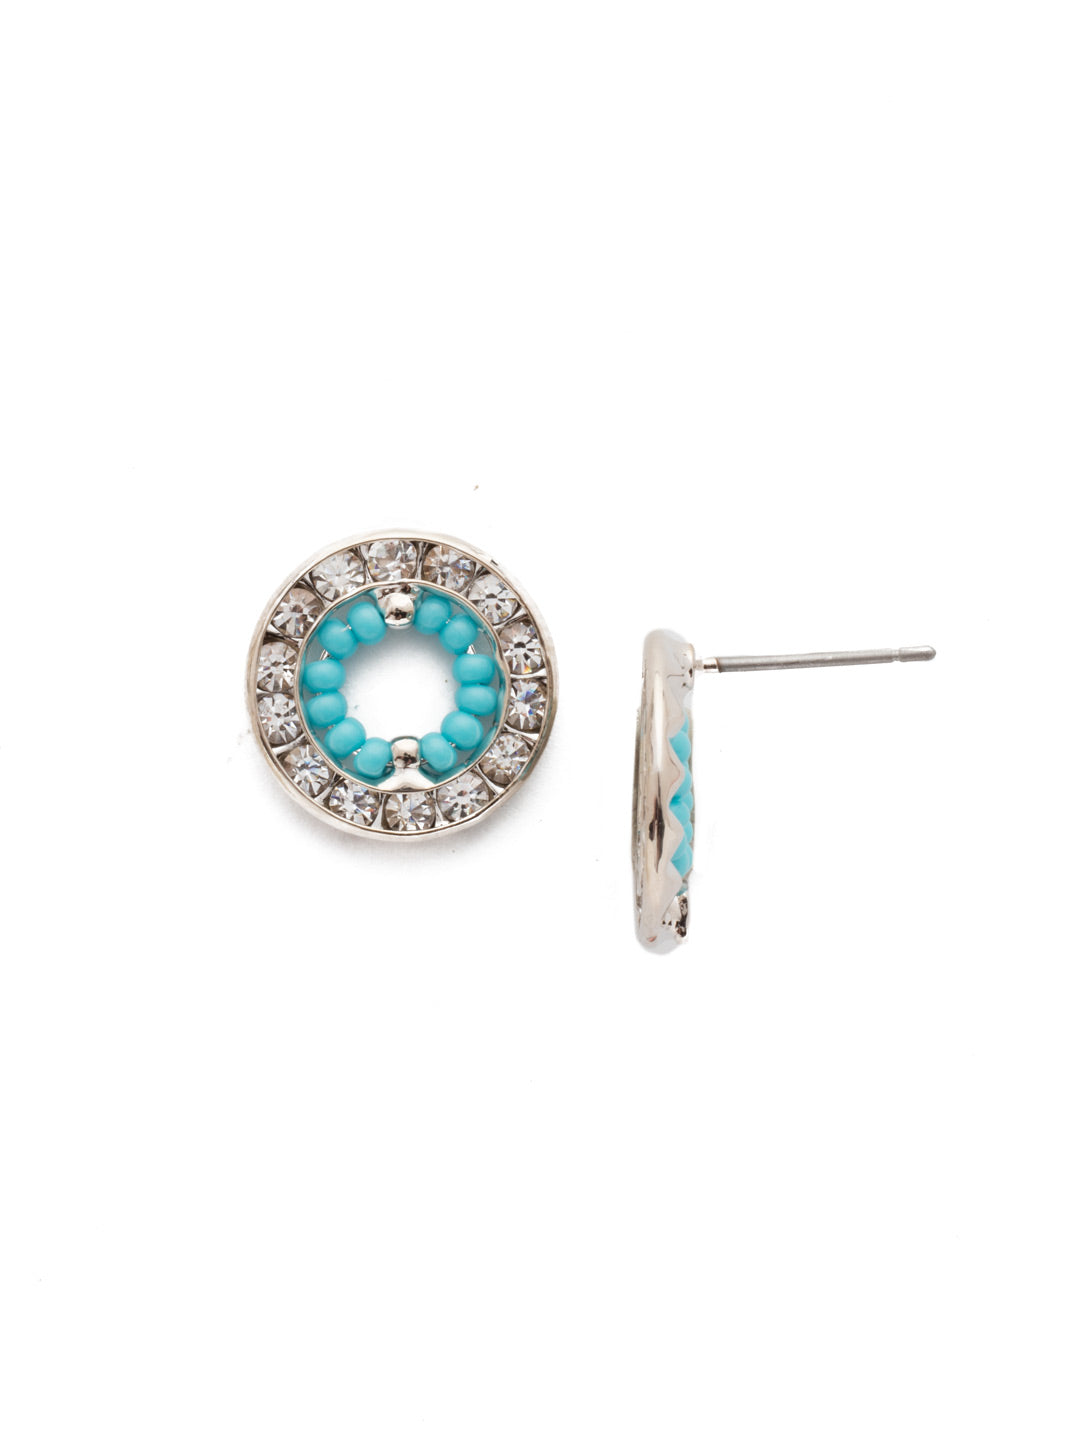 Fire & Ice Stud Earrings - EEH26RHTHT